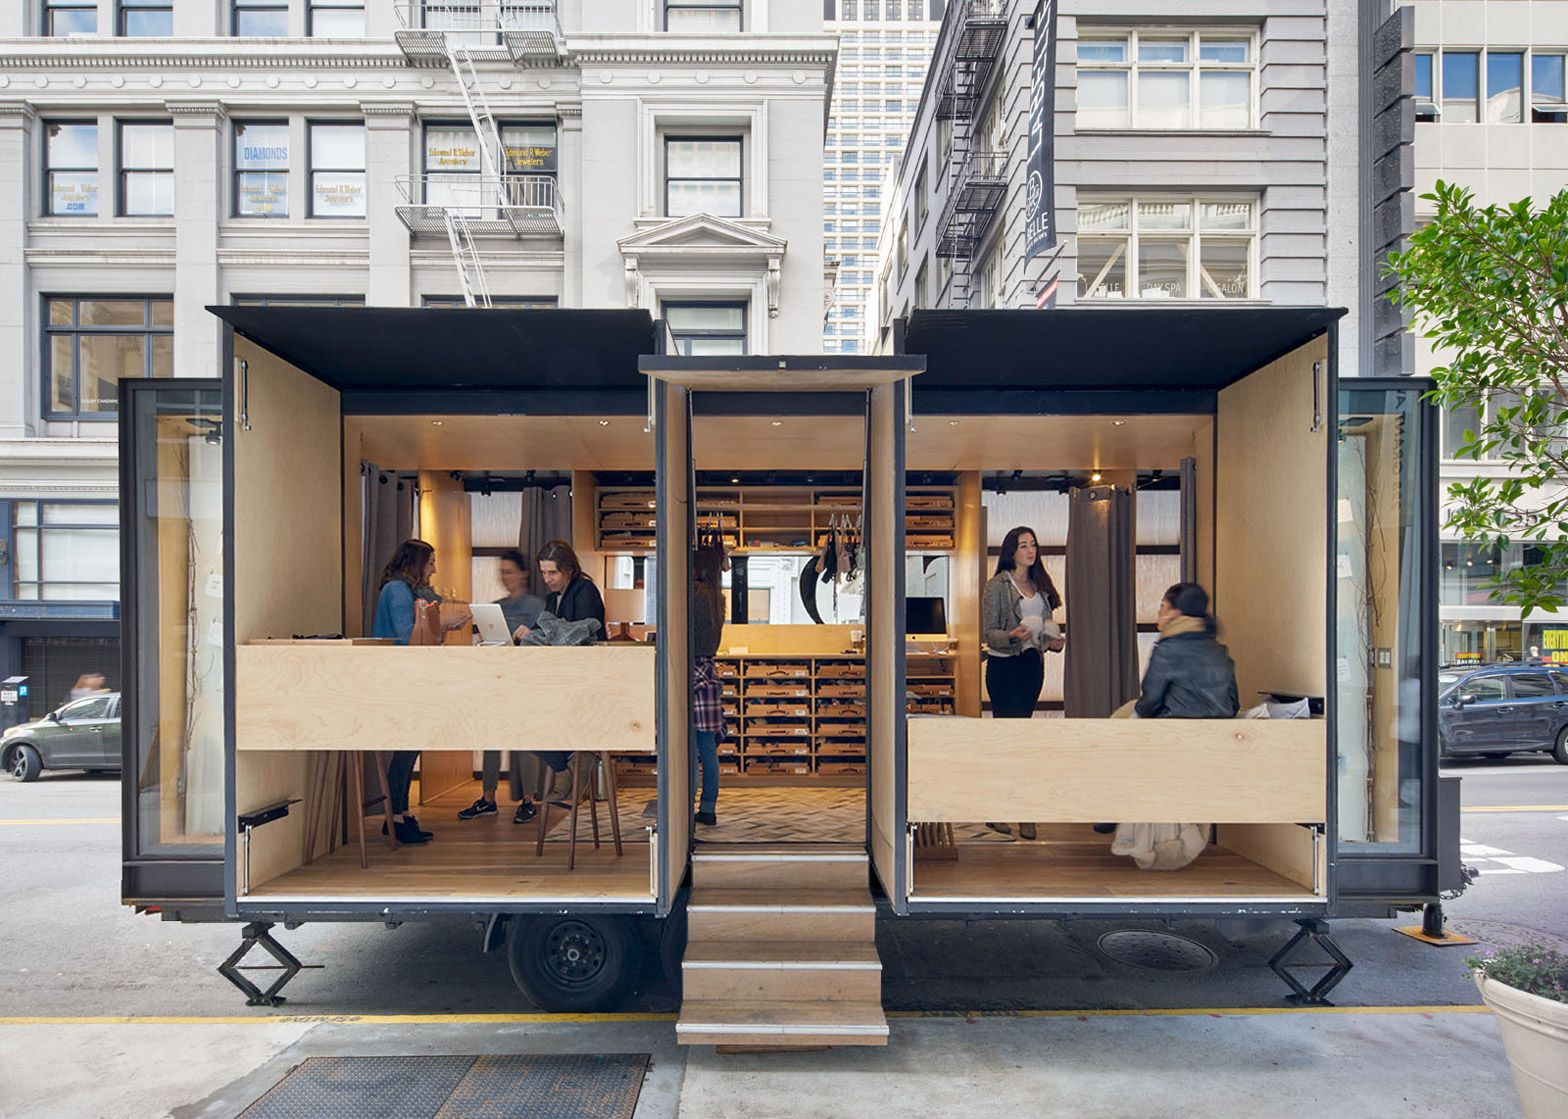 Mobile lingerie shop by SAW and MOA will travel across the US ...